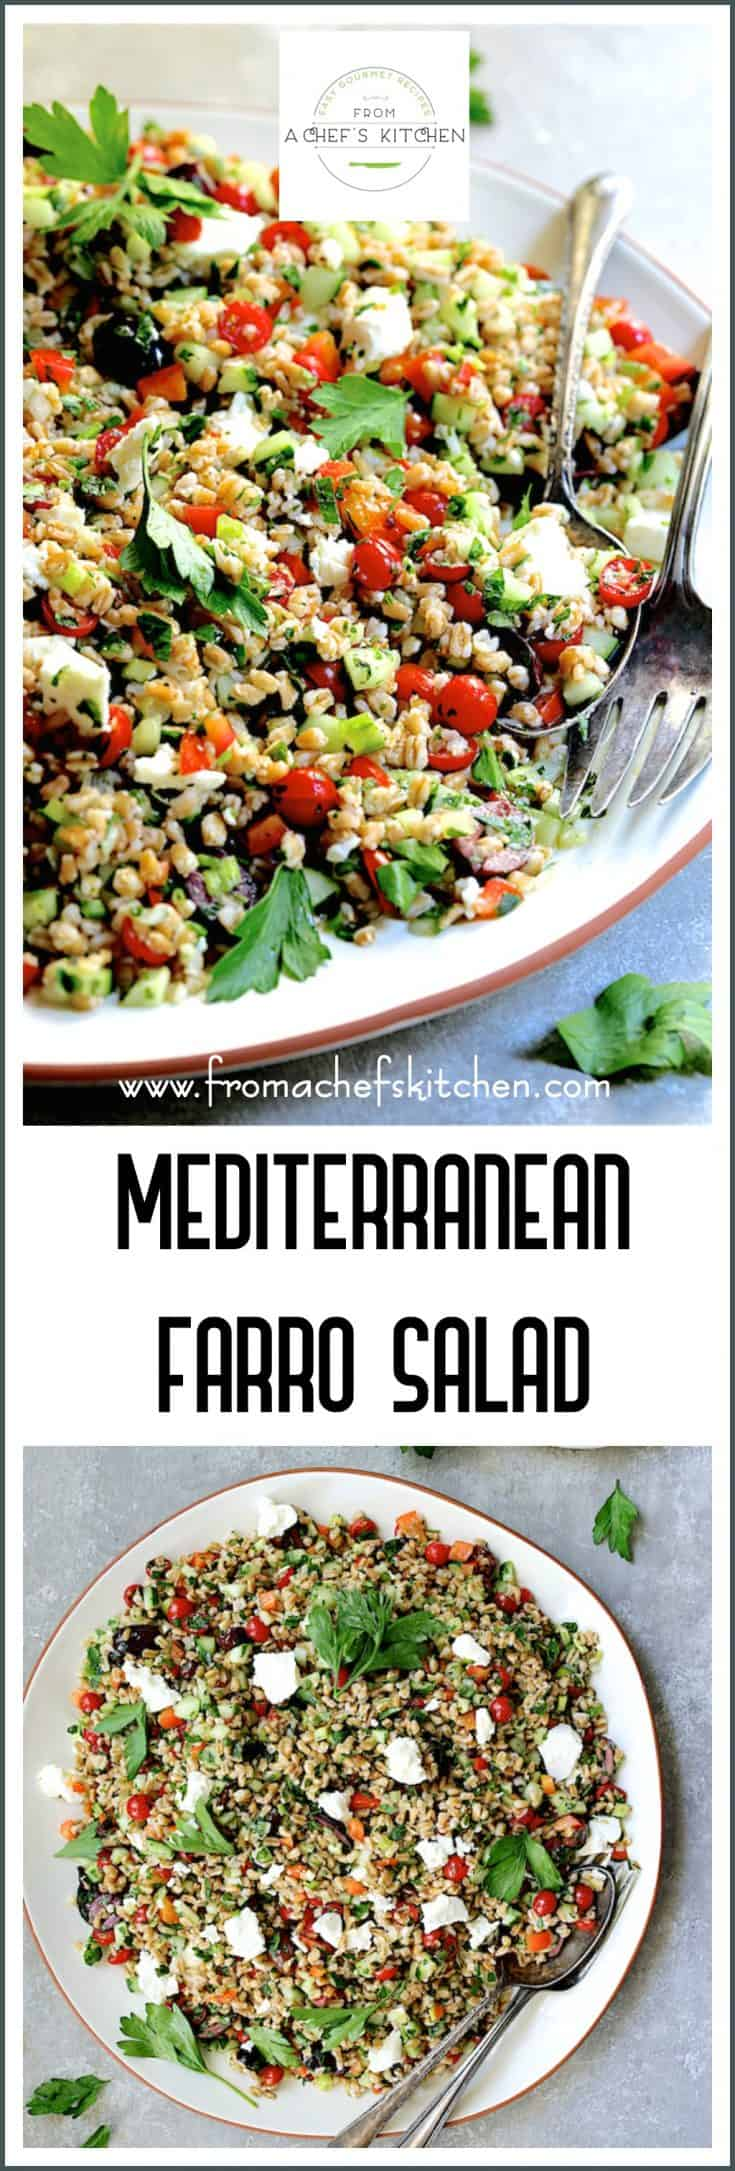 Mediterranean Farro Salad with a light, lemony dressing, crunchy vegetables and feta cheese is refreshing and perfect year-round! #mediterraneanfood #farro #salad #mediterraneansalads #grains